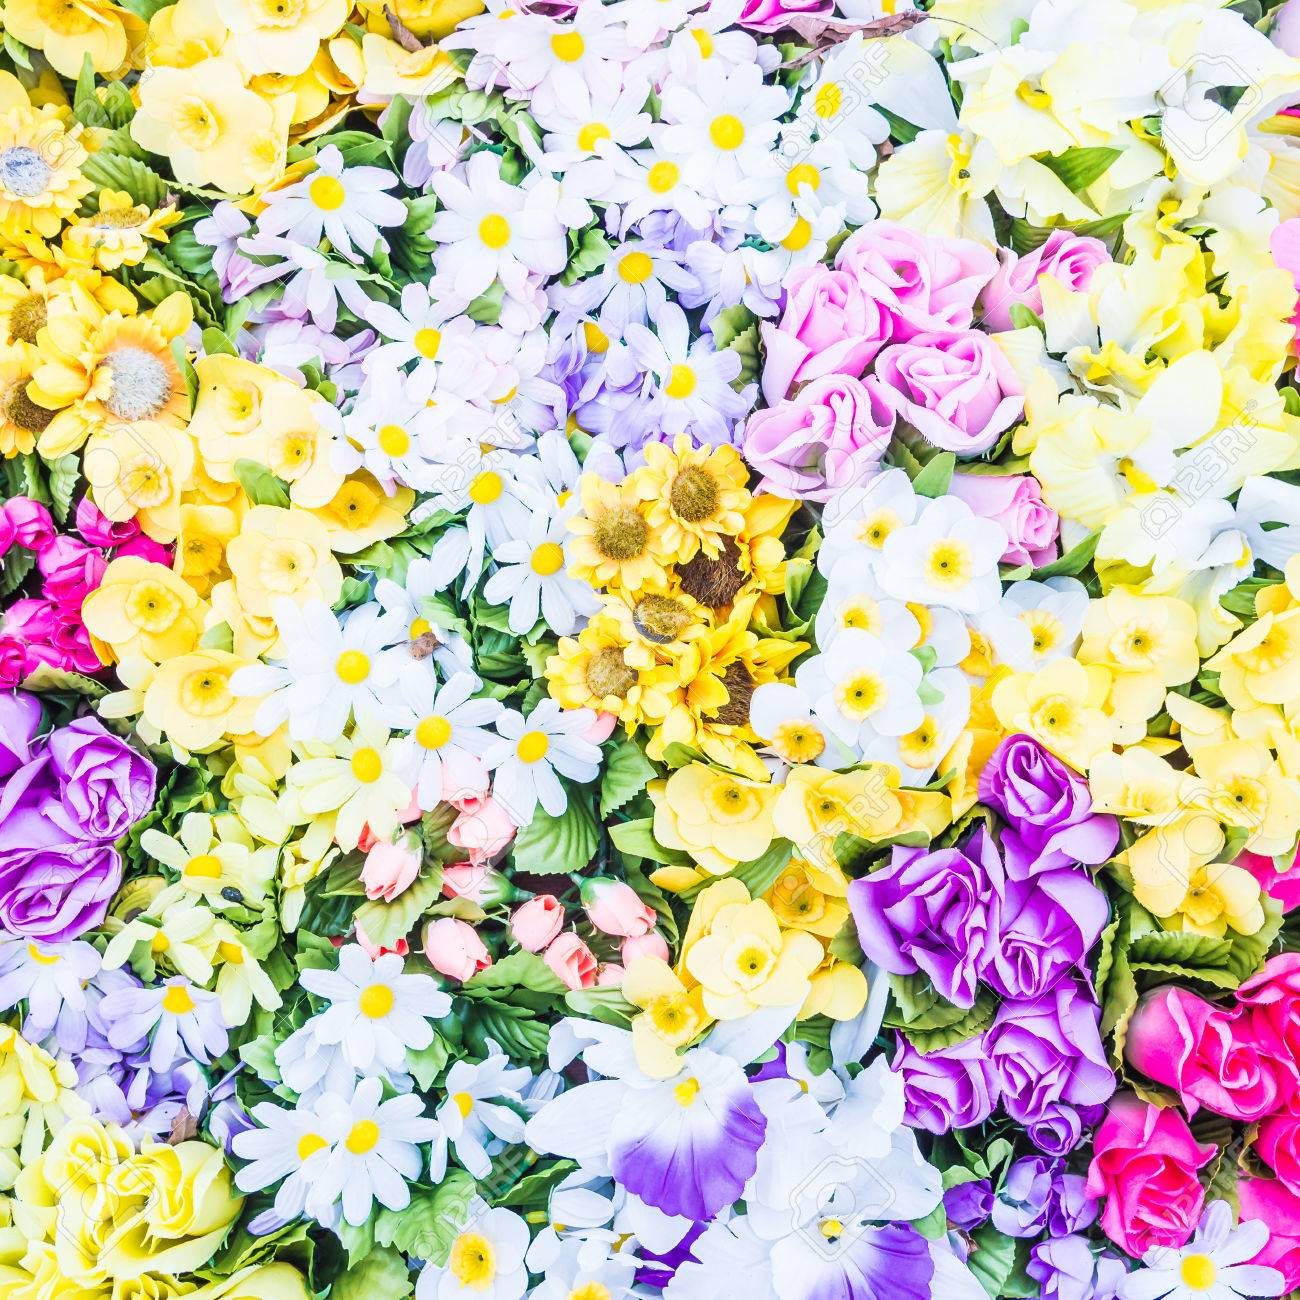 Beautiful Flower Backgrounds Stock Photo Picture And Royalty Free